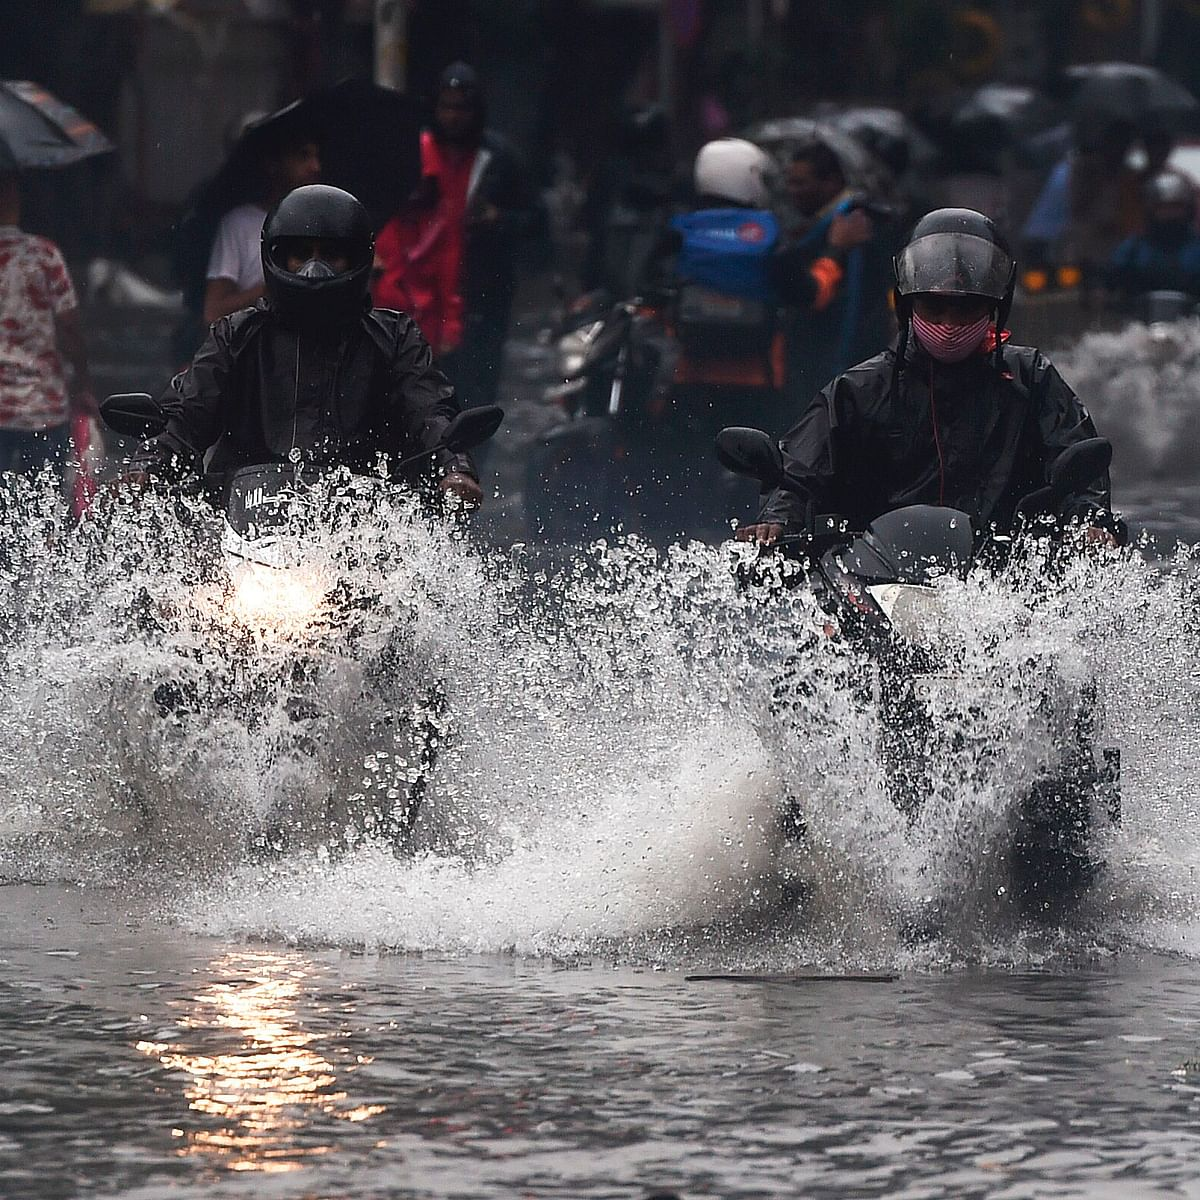 Mumbai Rains: Bombay High Court suspends hearings due to heavy rains